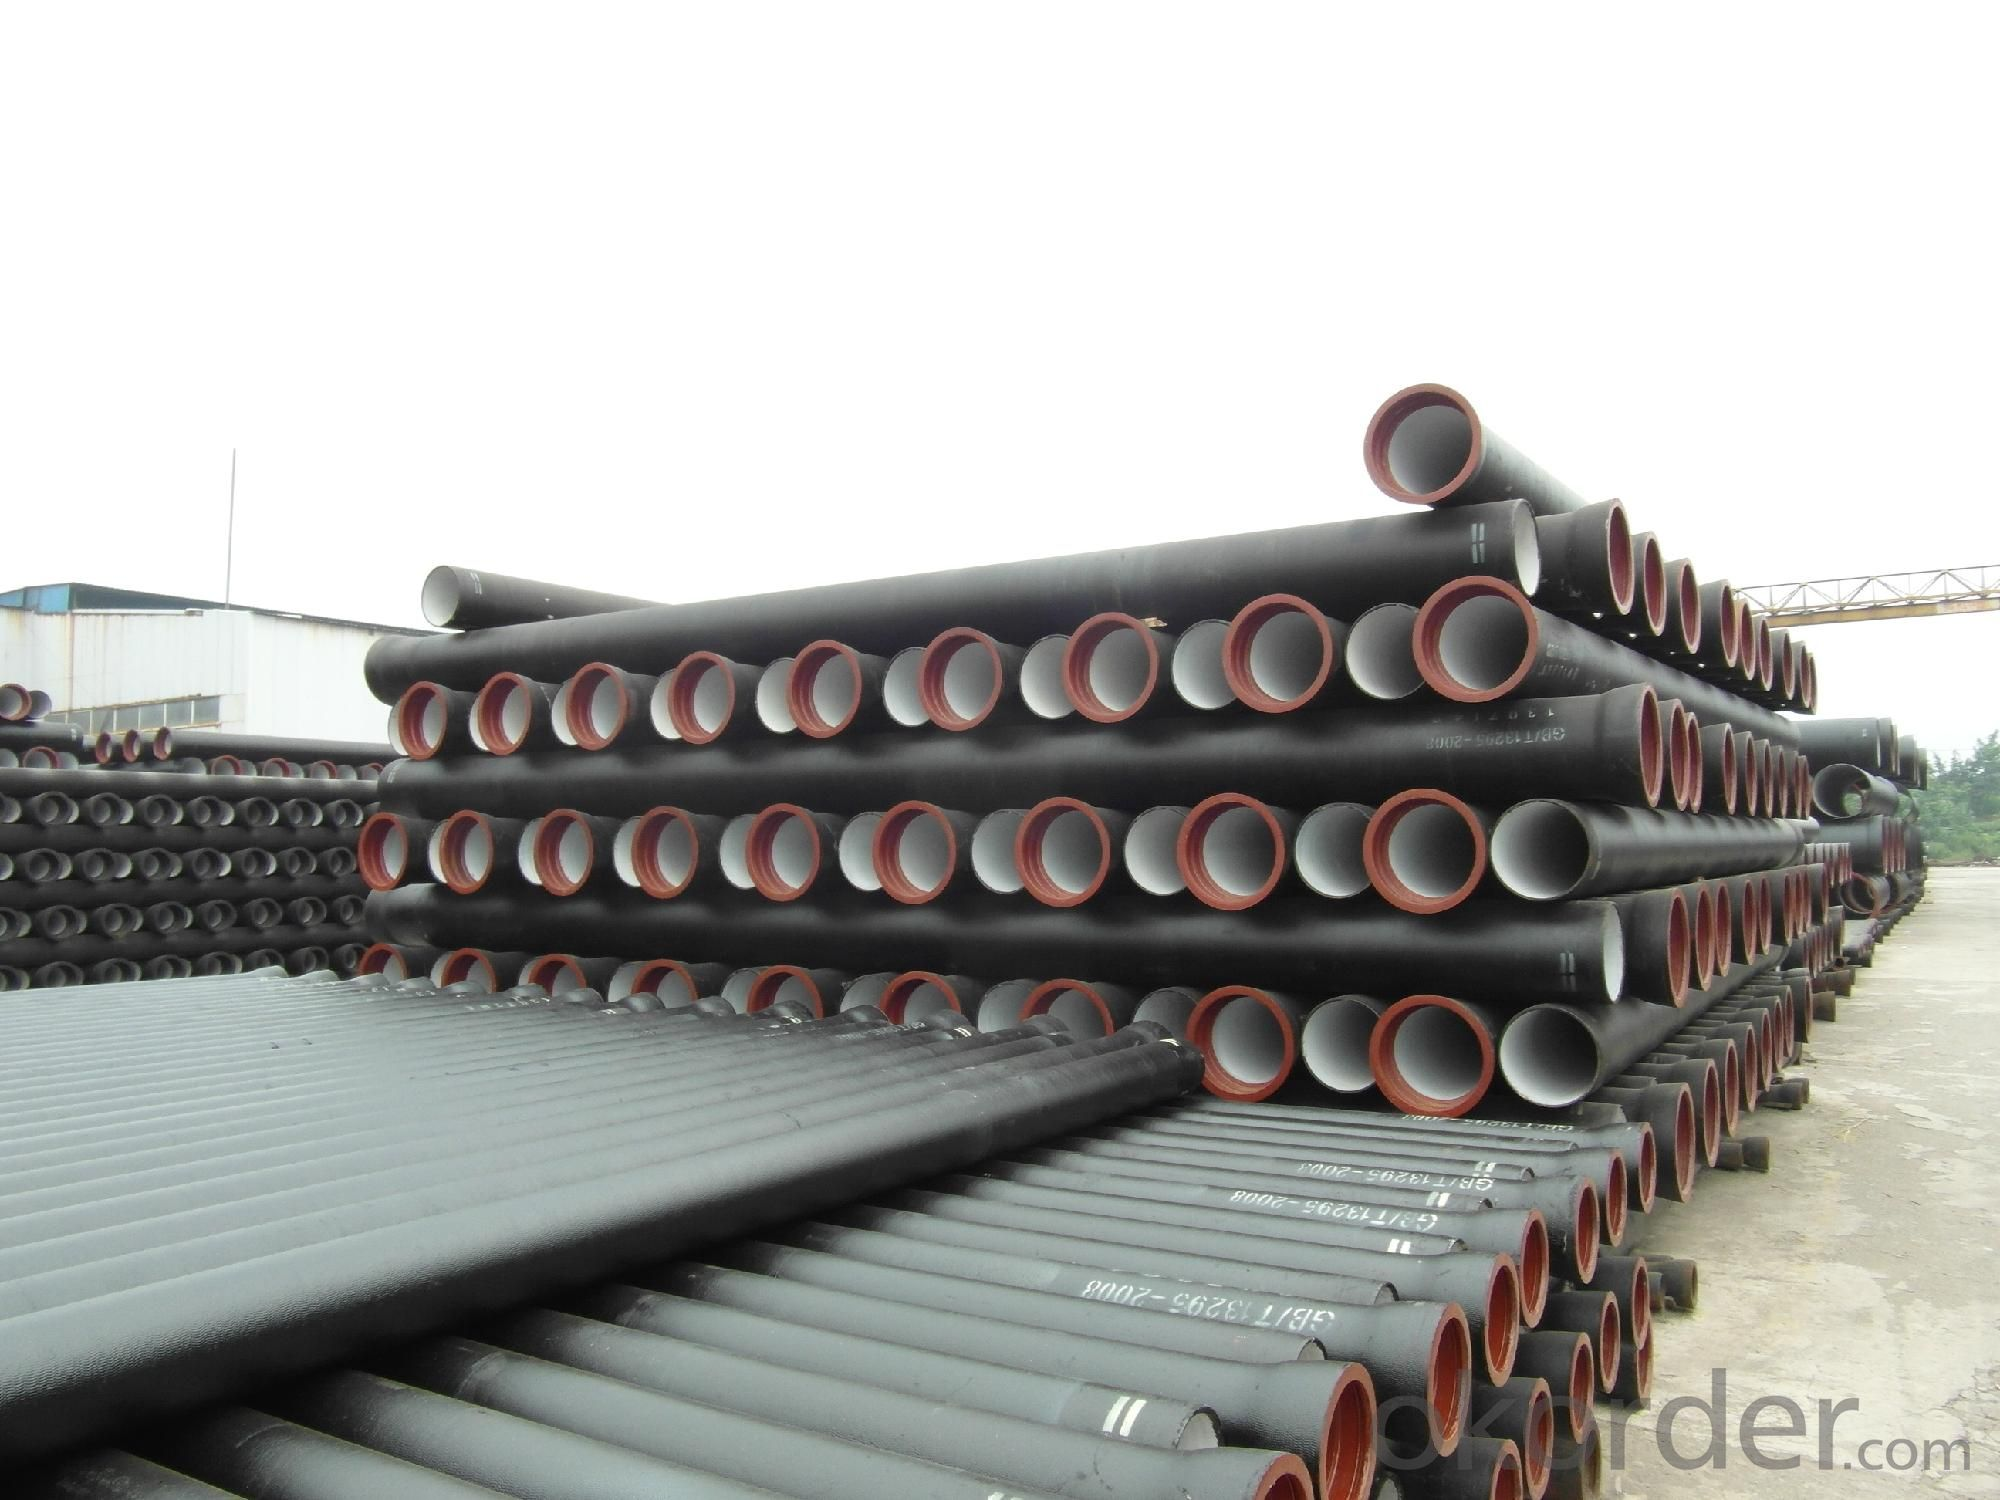 Ductile Iron Pipe DN500-DN1000 ISO2531 In Bulk Vessel